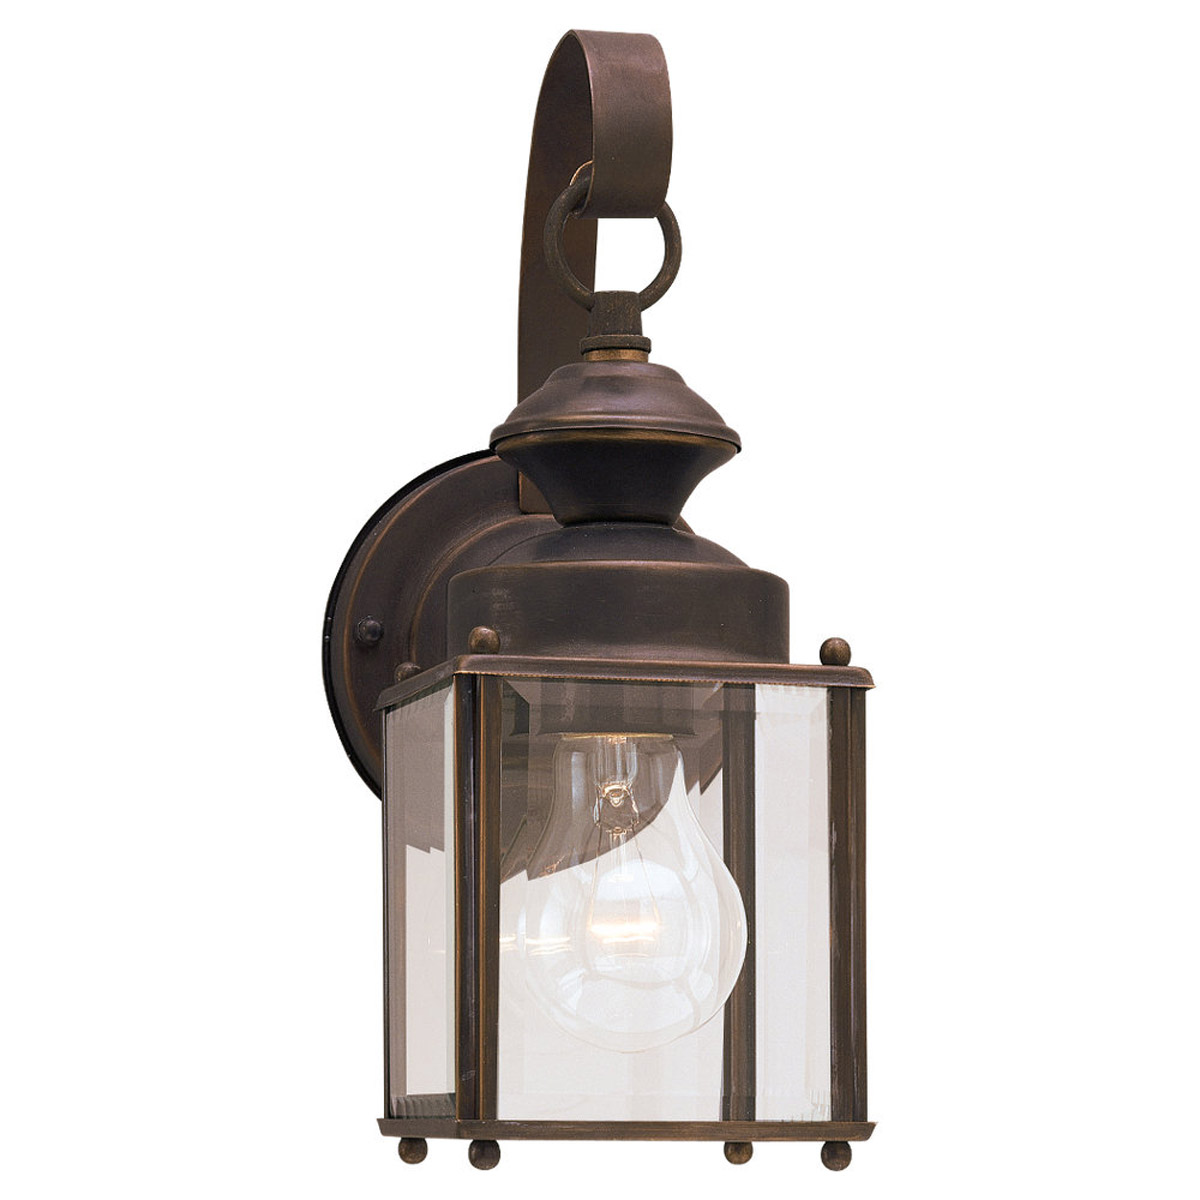 Sea Gull Lighting Jamestowne 1 Light Outdoor Wall Lantern in Antique Bronze 8456-71